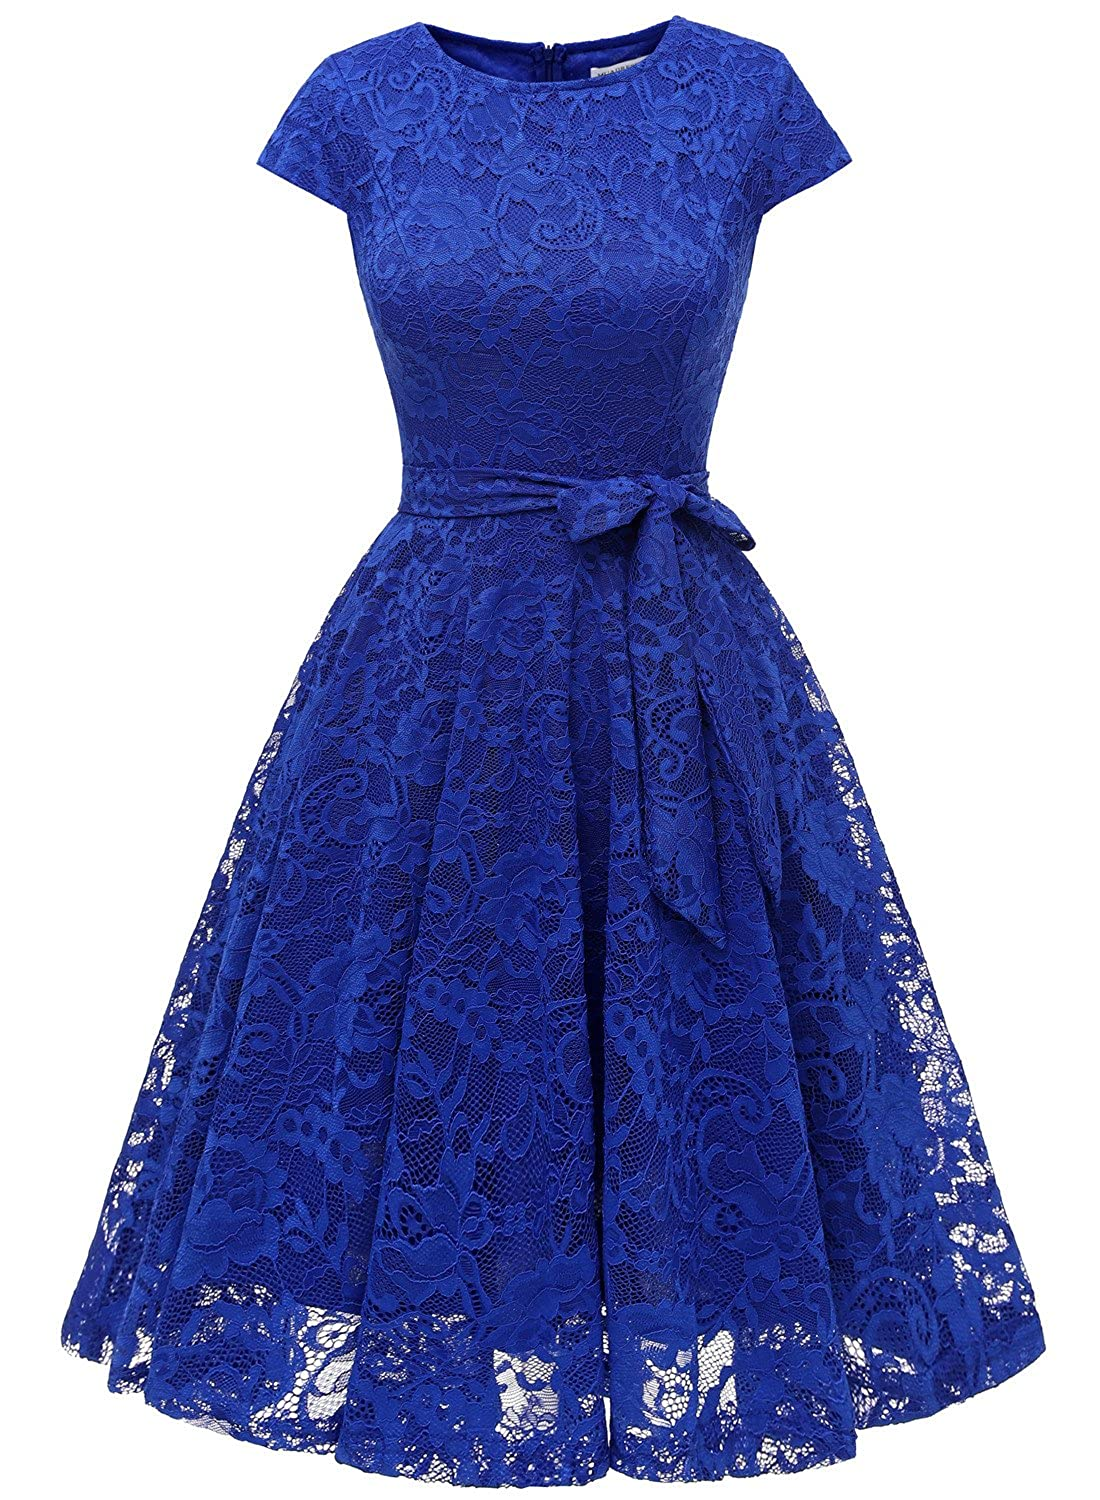 MUADRESS Women Short Bridesmaid Dresses with Cap-Sleeve Chic Lace Formal Dresses